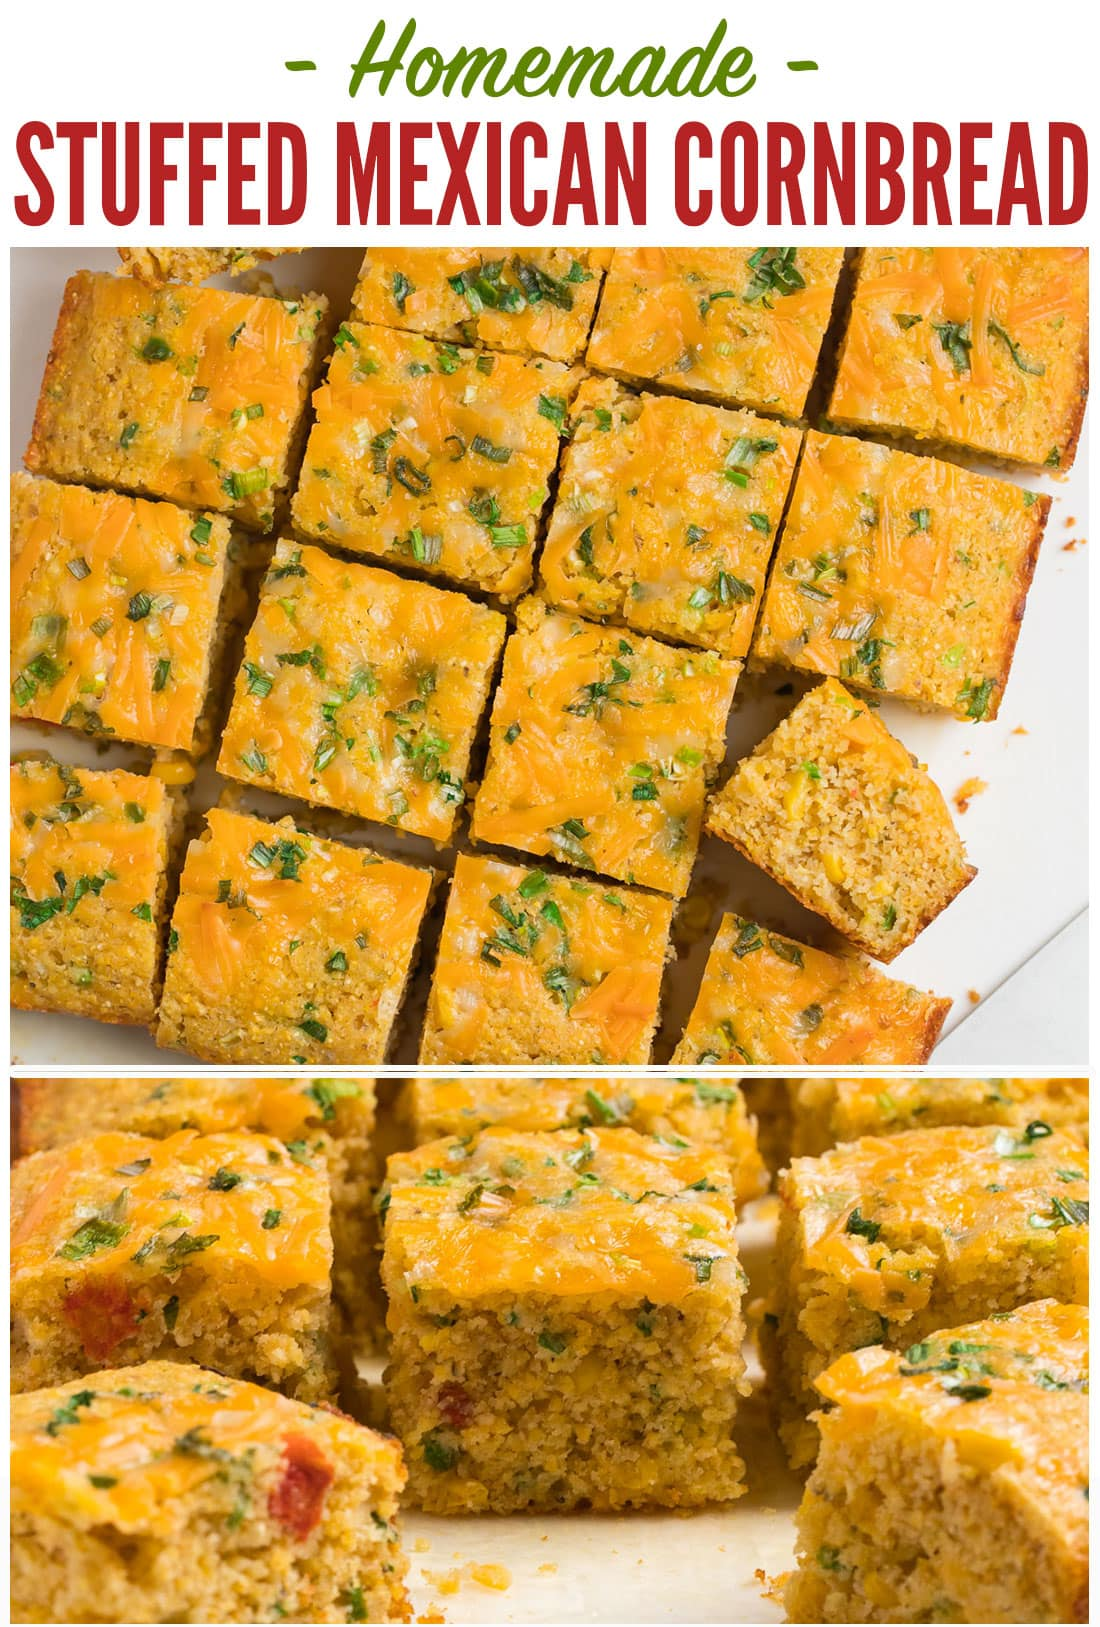 Easy Mexican Cornbread from scratch! So much better than a Jiffy mix. This cheesy stuffed Mexican cornbread recipe is moist, tender, and packed with cheese, jalapeno, and Mexican corn. #wellplated #mexicancornbread #easy